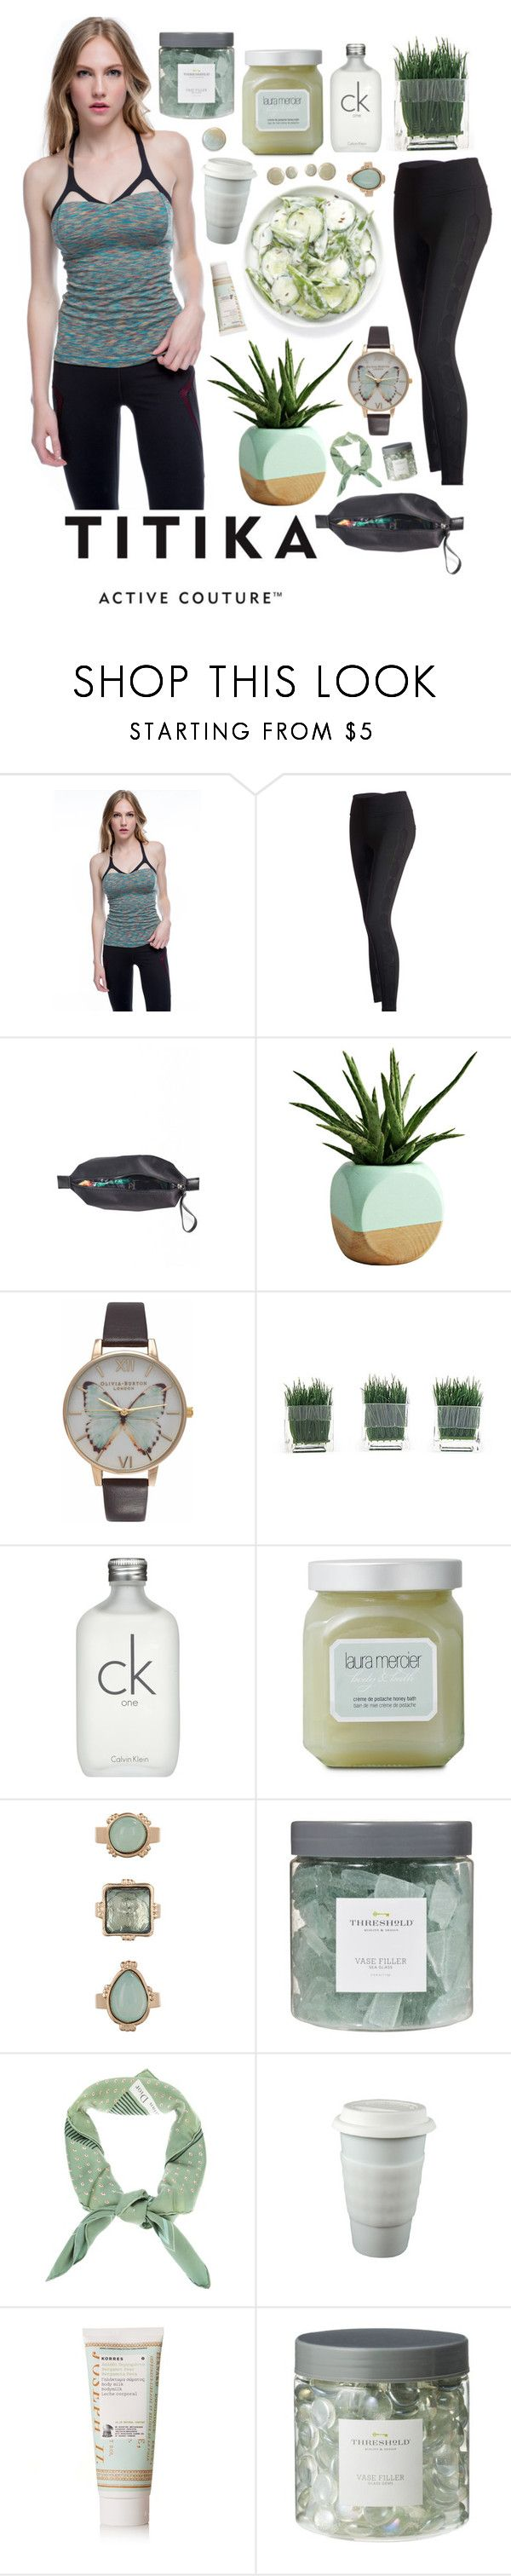 """""""lyla."""" by cauchemar-exquis ❤ liked on Polyvore featuring Titika, Dot & Bo, Olivia Burton, Calvin Klein, Laura Mercier, 10 Bells, Threshold, Christian Dior, Korres and WALL"""